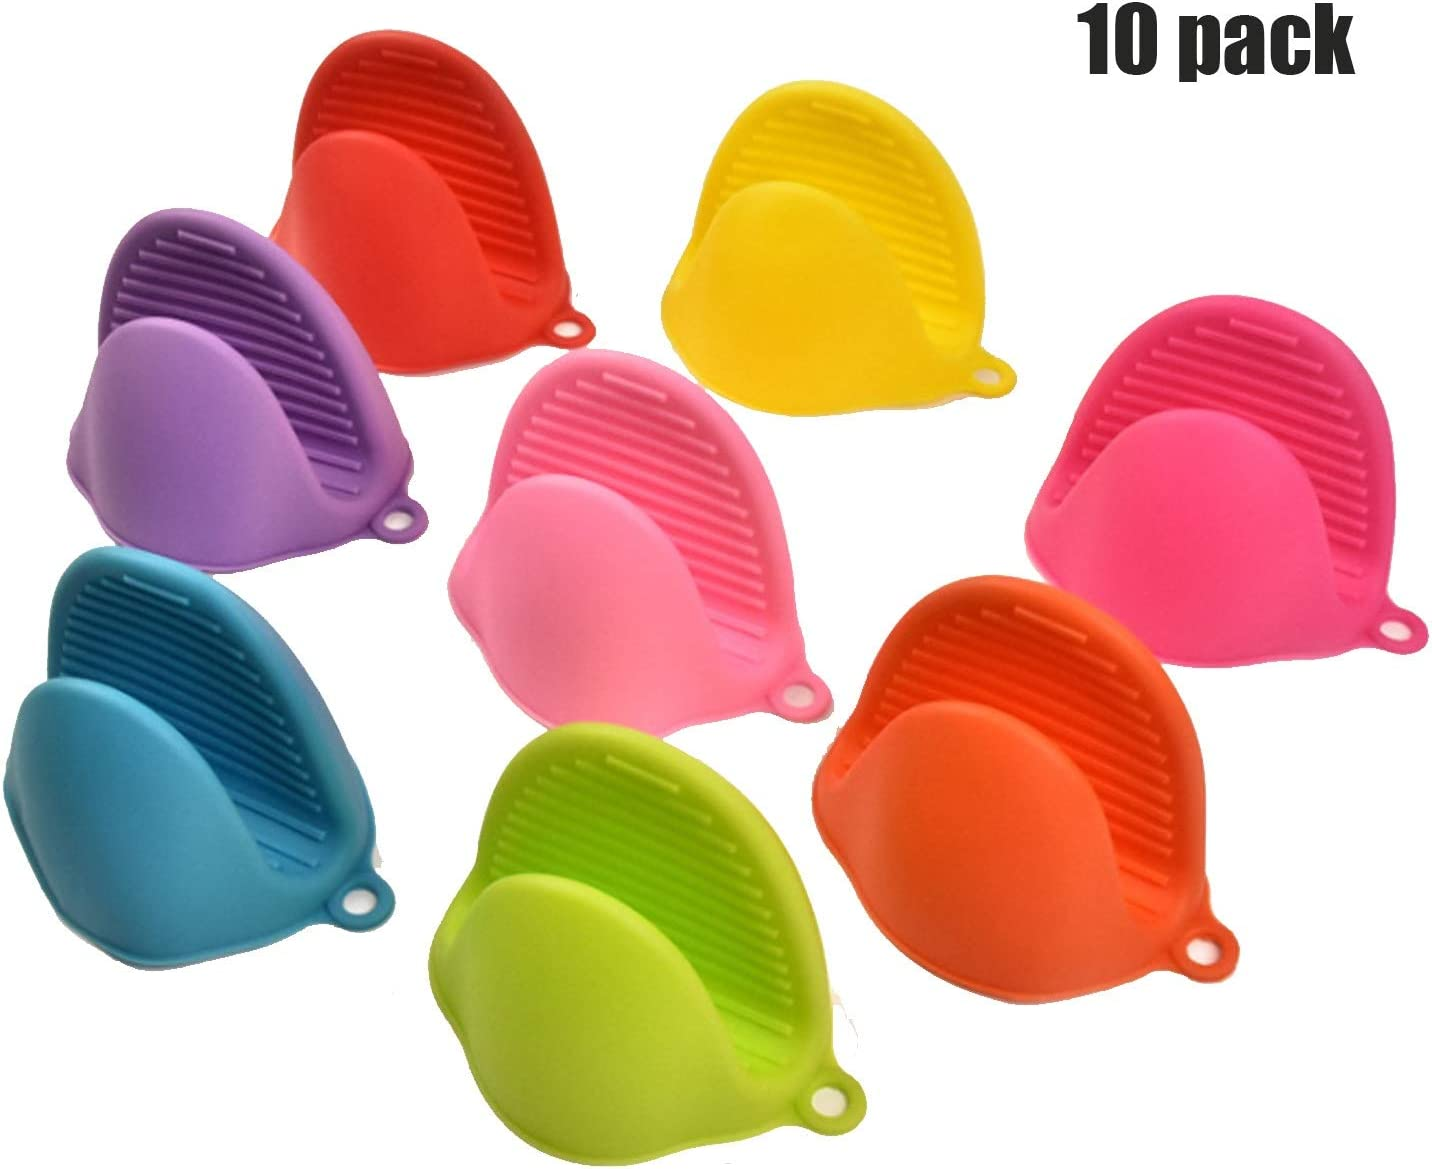 Man hongjia 10PCS Silicone Hot Pot Holder Oven Gloves Mini Oven Mitts Cooking Durable